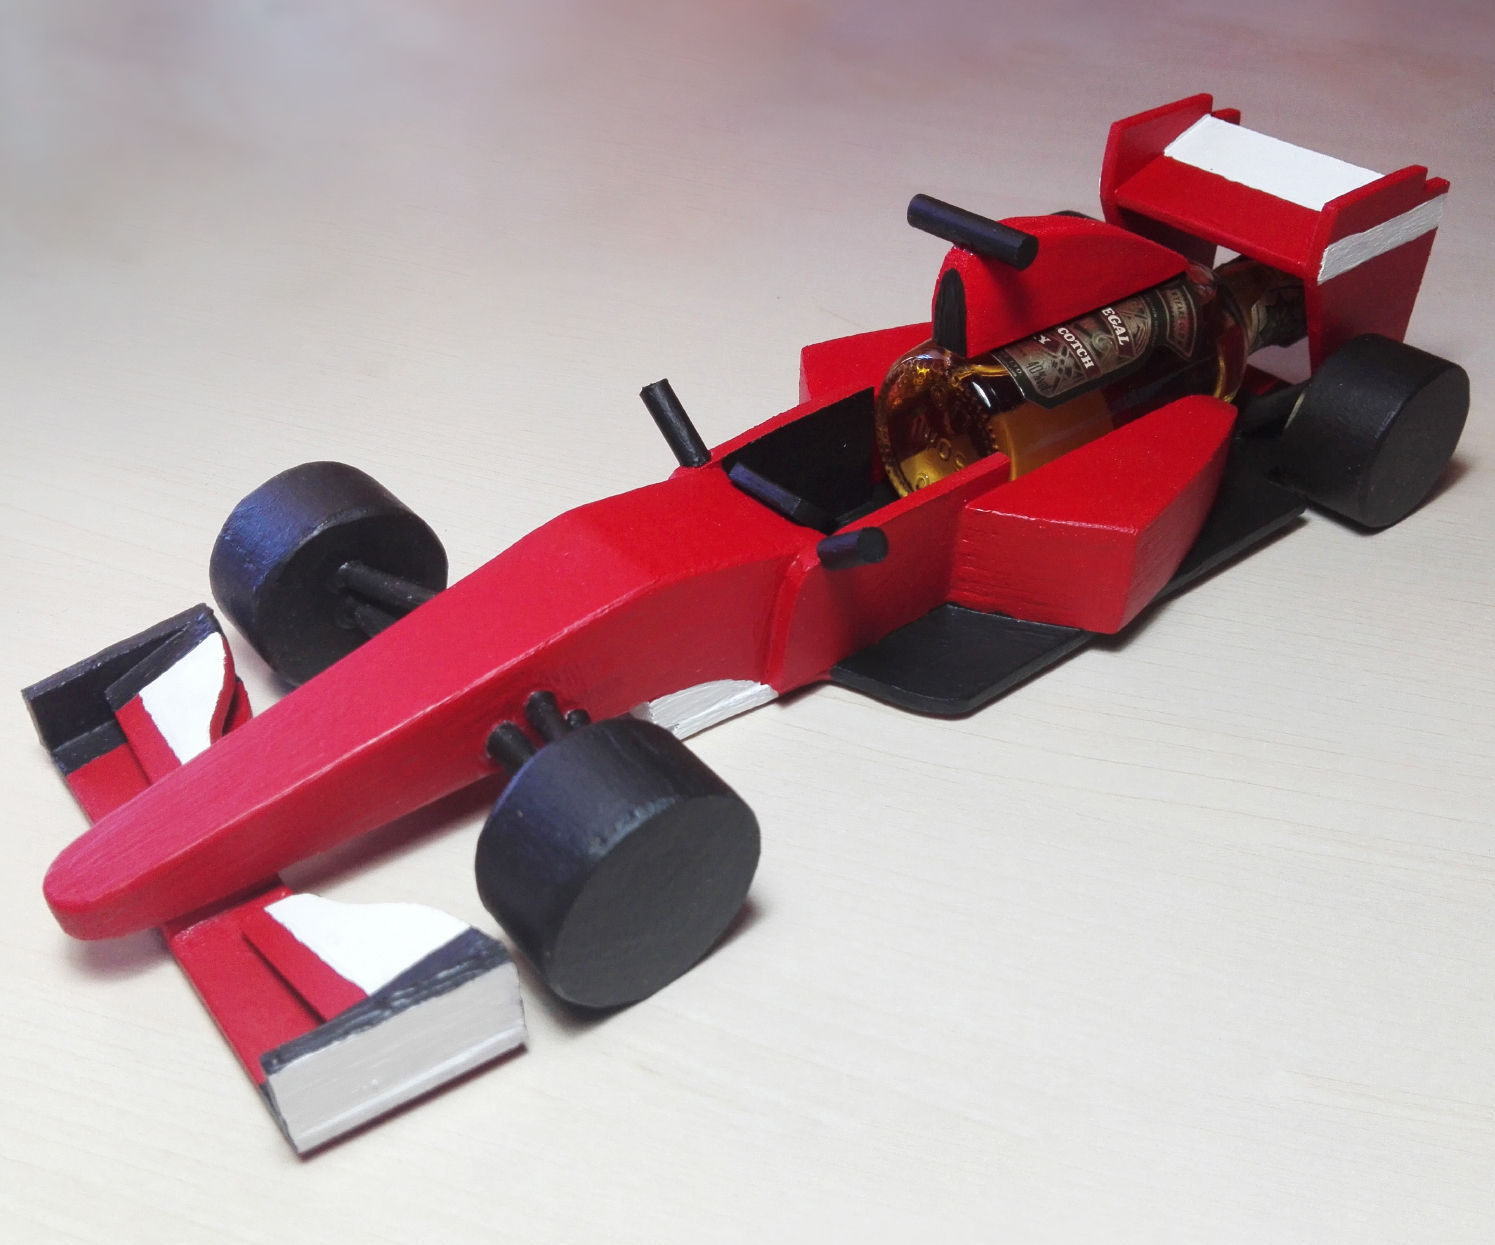 F1 Car With Miniature Bottle From Scrap Pieces